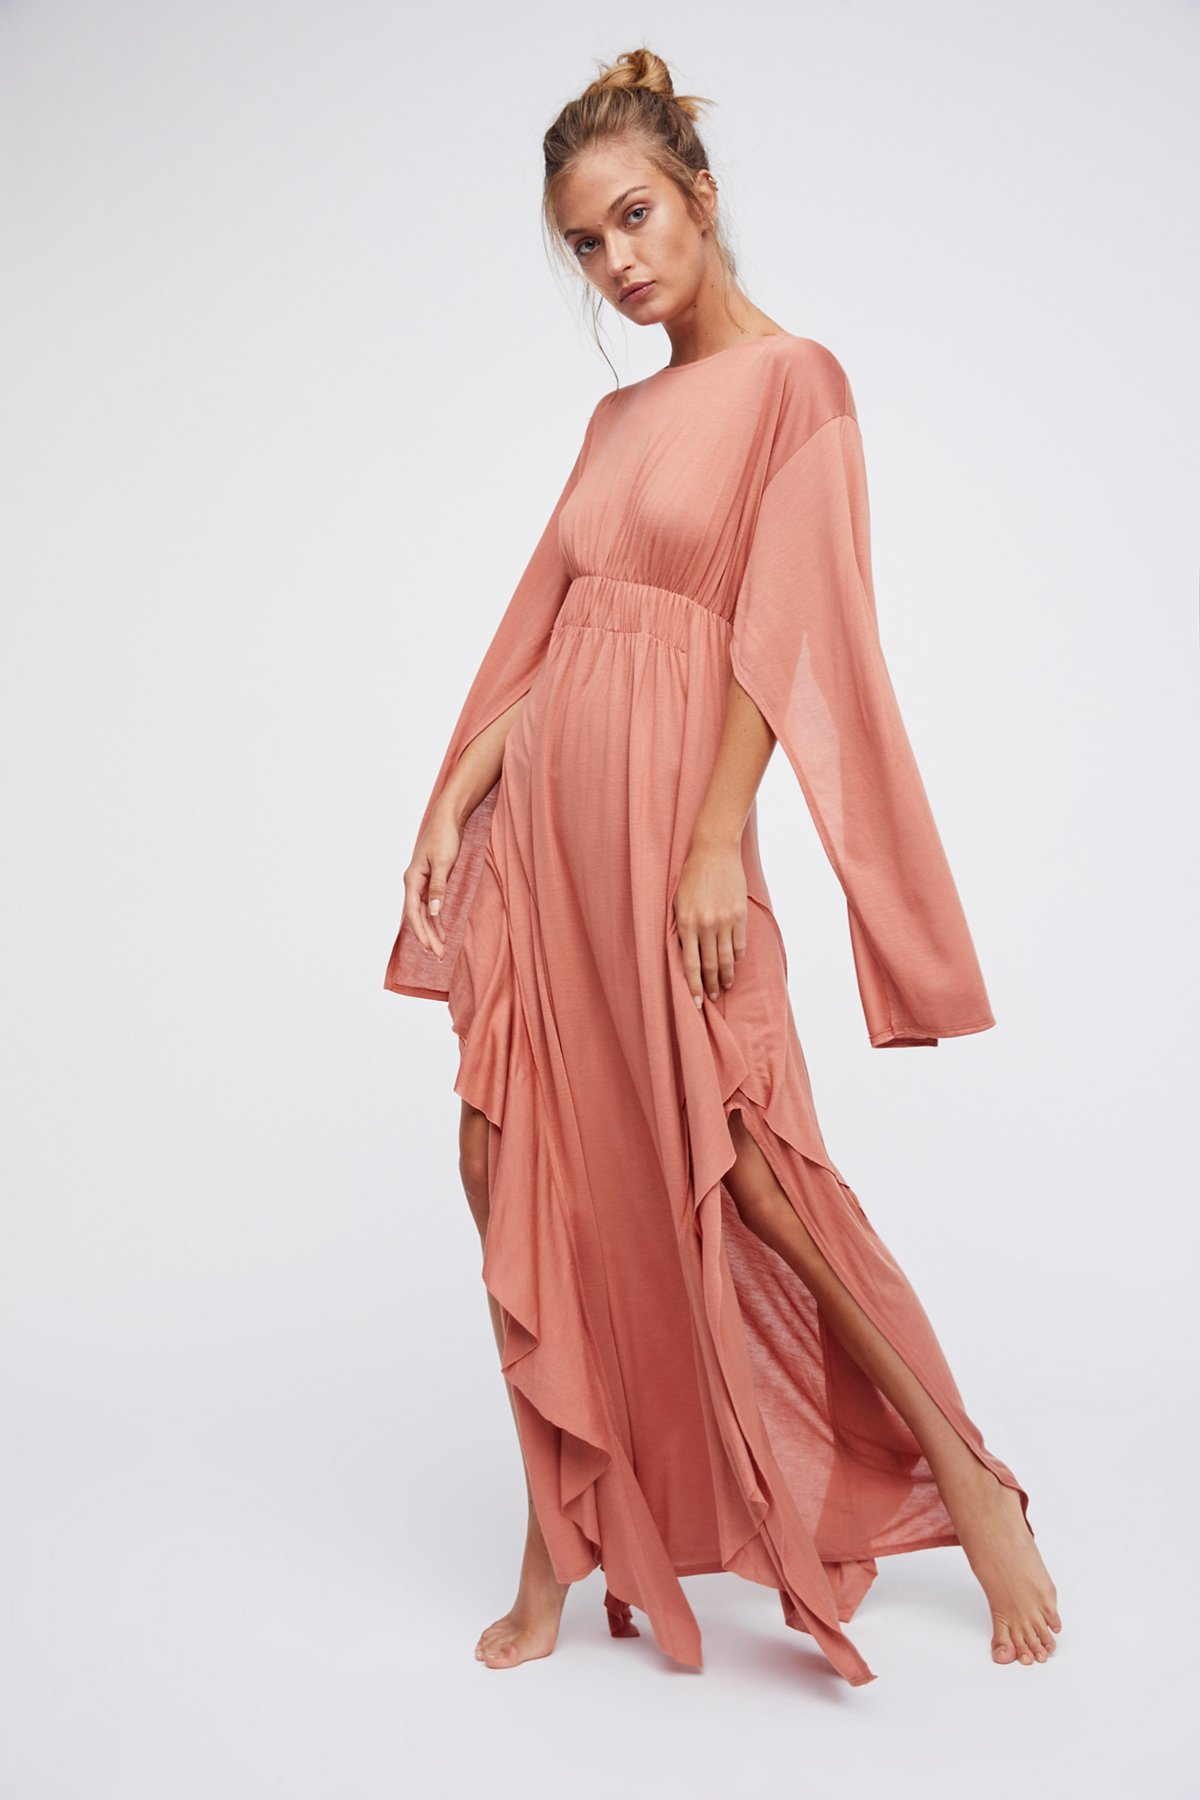 971cf6846e Fp Beach Copper Fantasy Maxi Dress At Free People Clothing Boutique ...